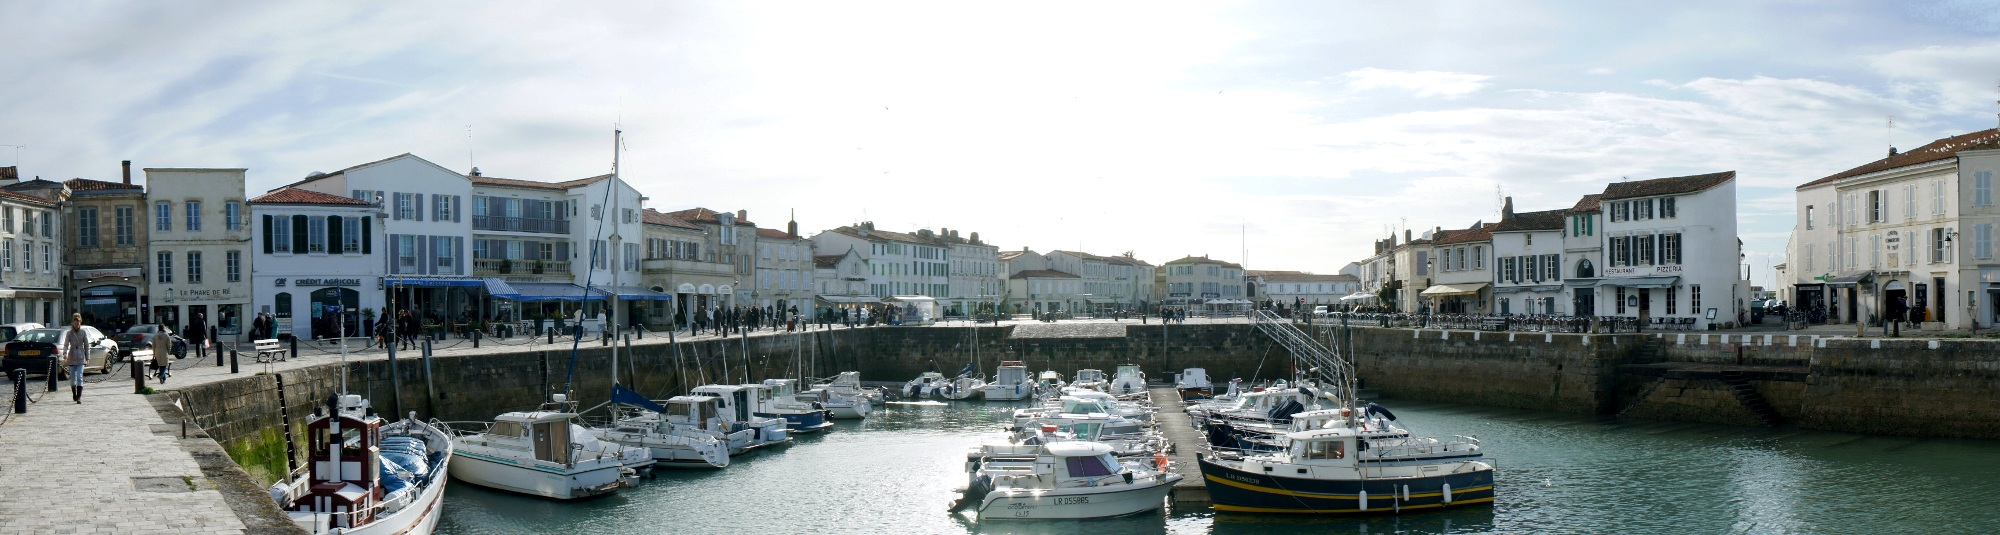 Vue panoramique du port de Saint-Martin de Ré